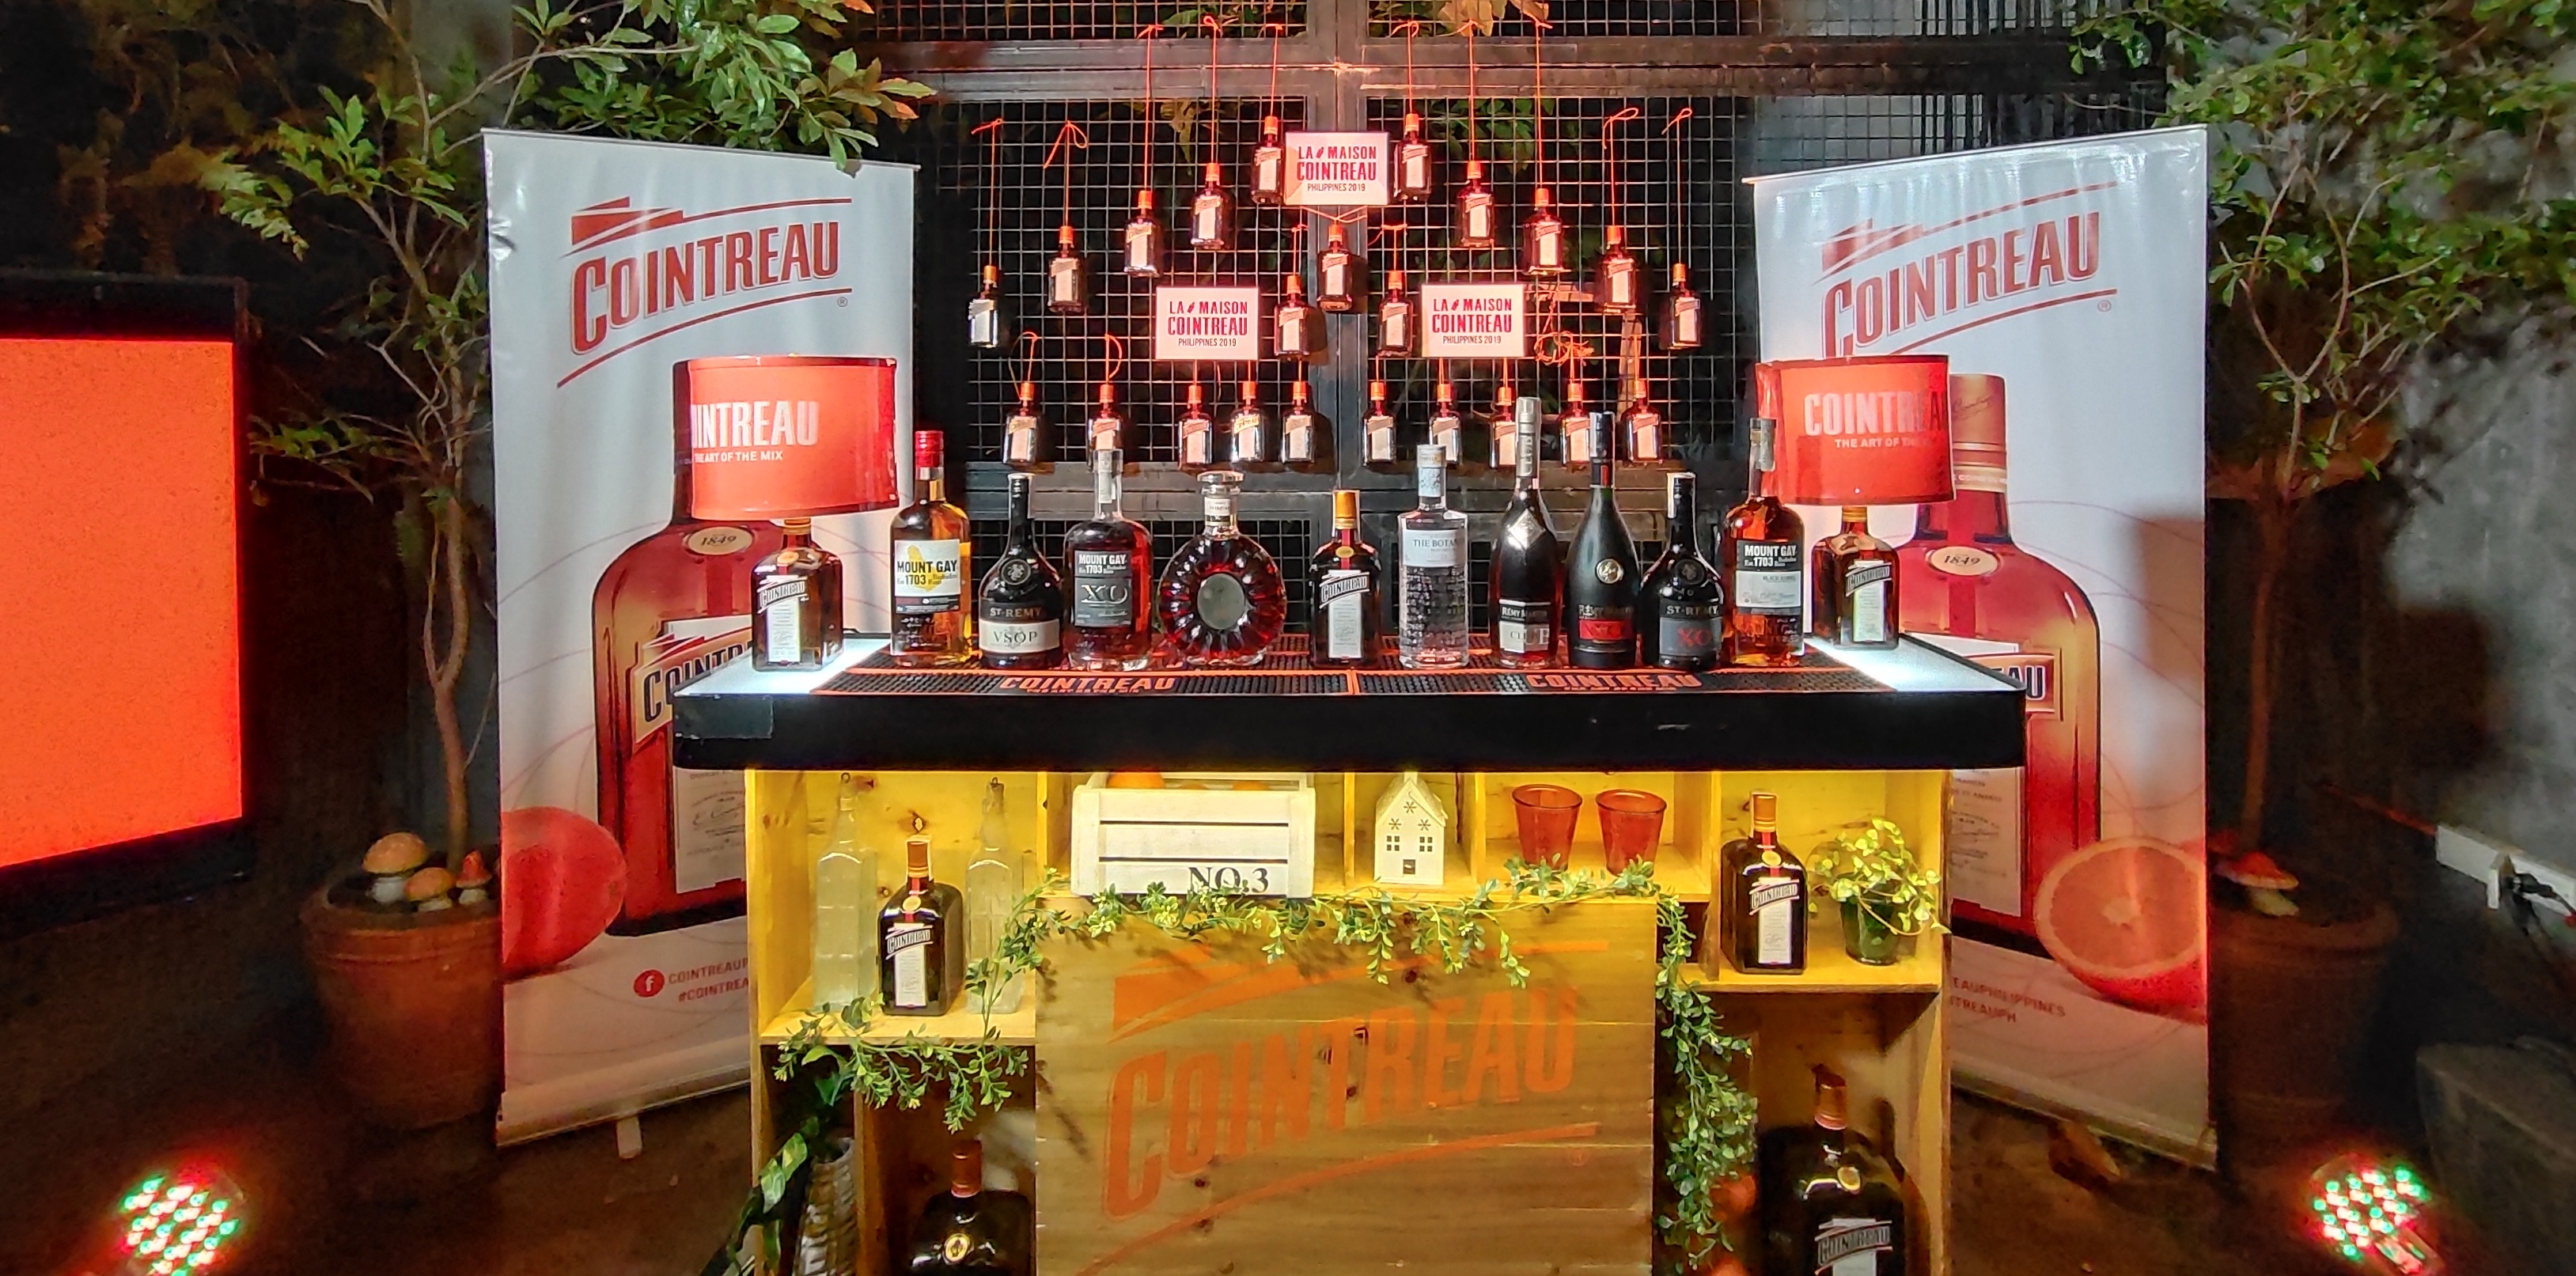 La Maison Cointreau Philippines Bartending Competition Winner is Abegail Quilan-lan of Proof Manila